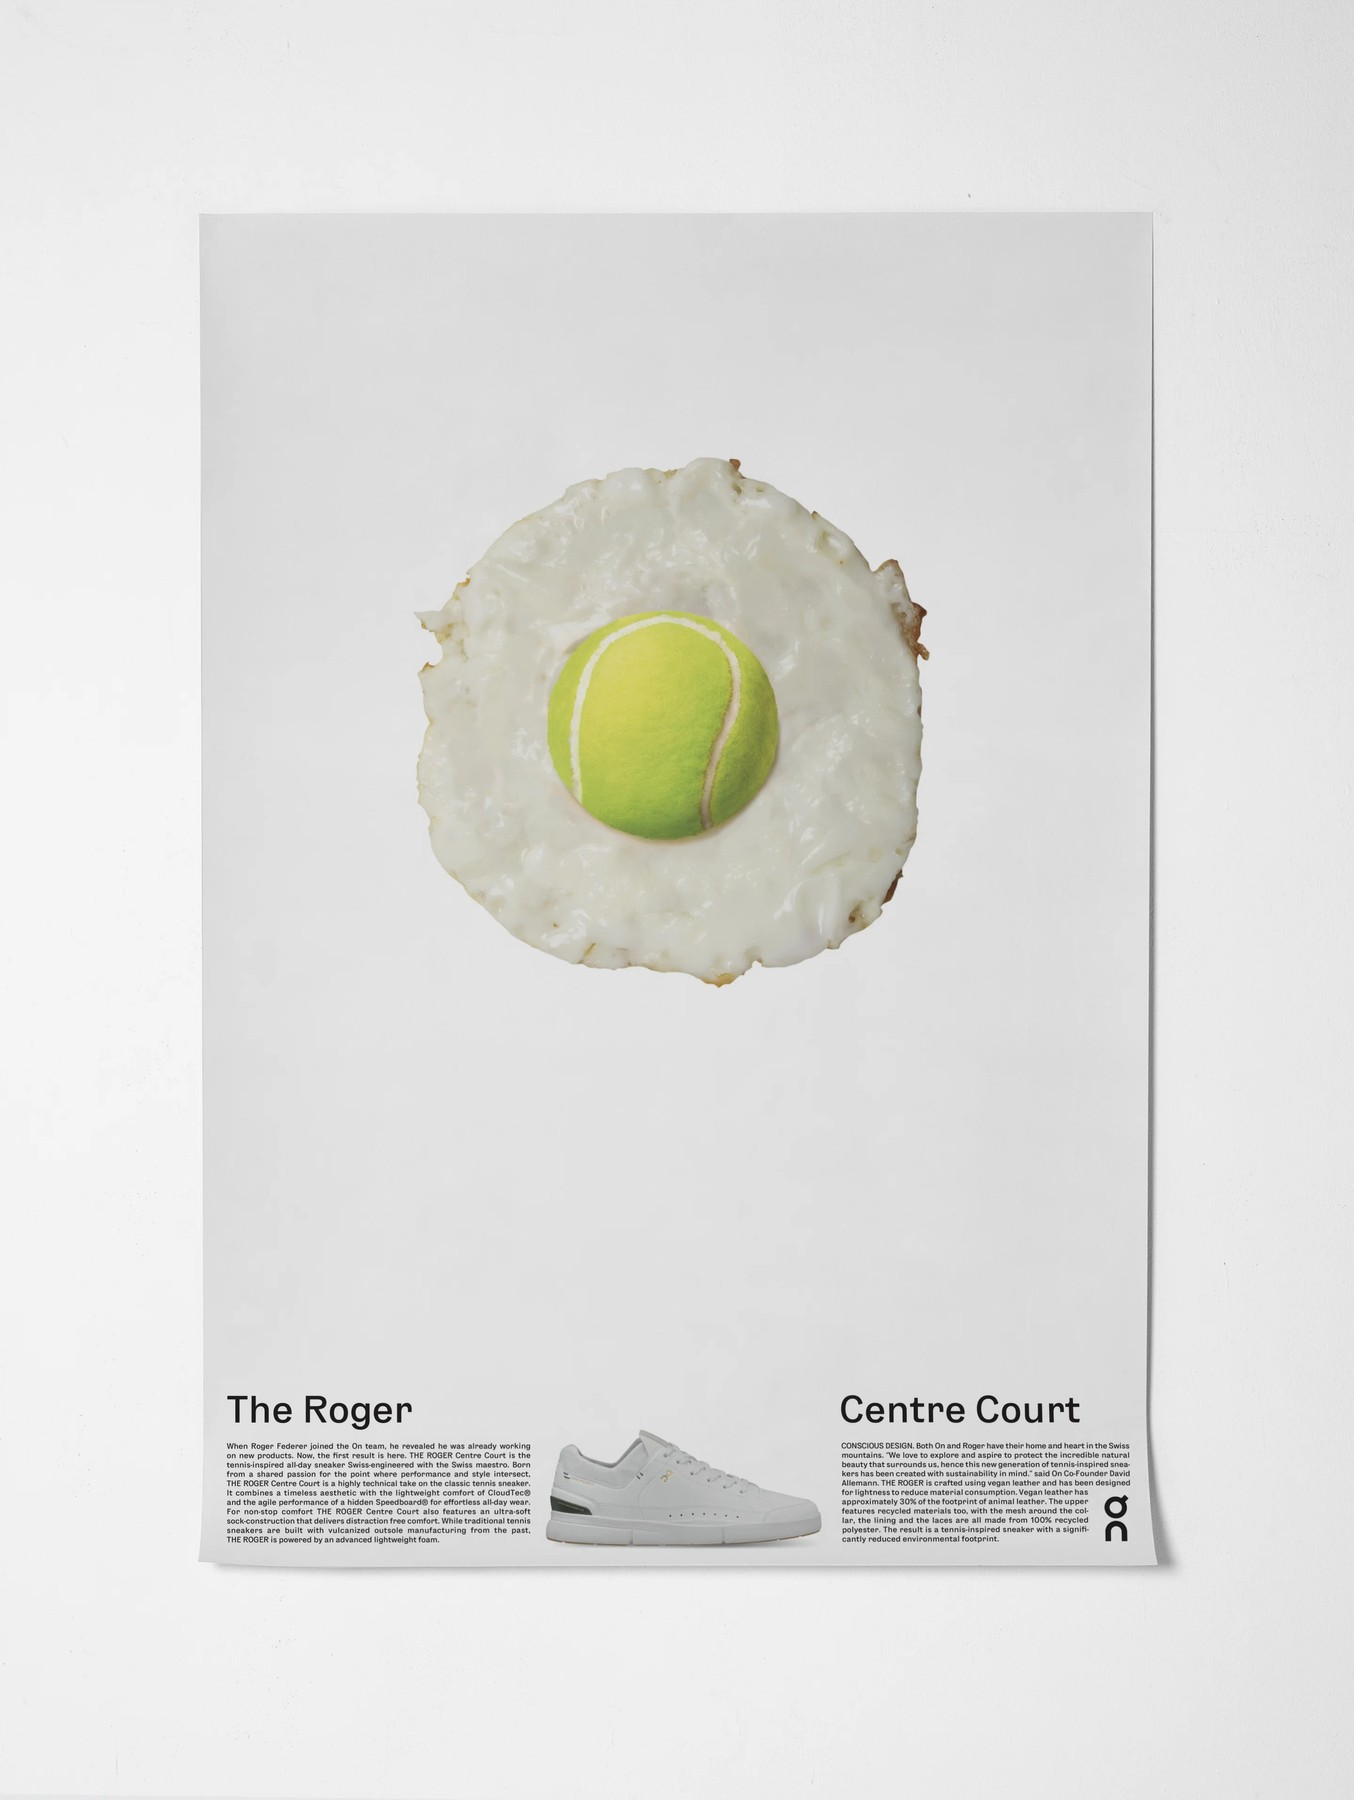 neo-neo-graphic-design-itsnicethat-09.jpg